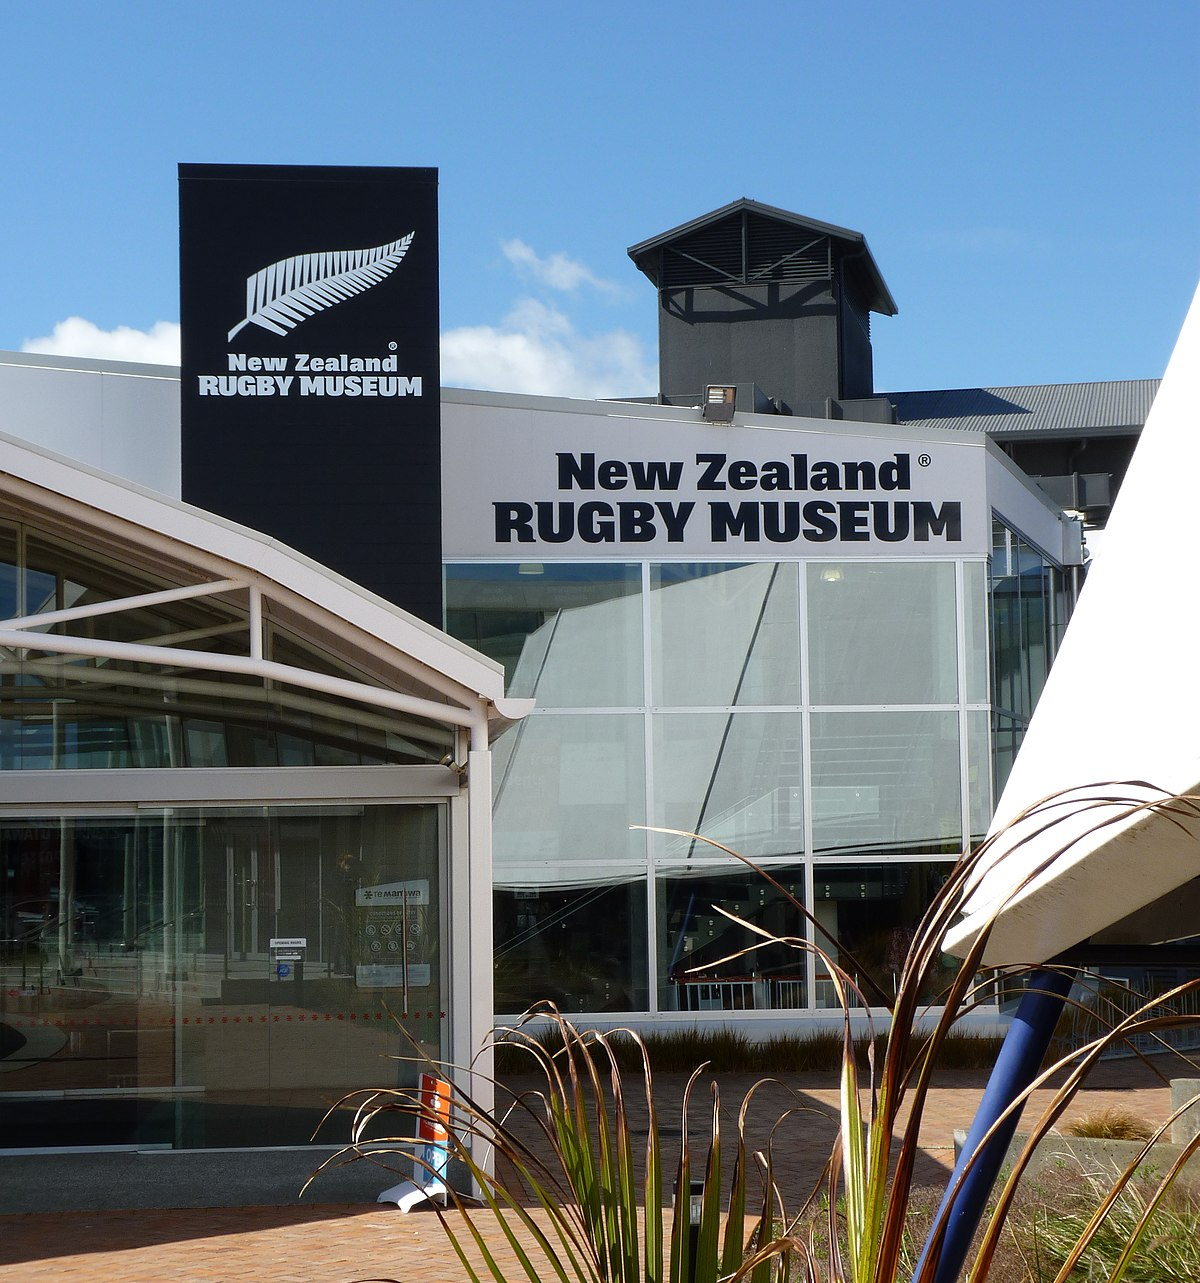 New Zealand Rugby Museum Wikipedia